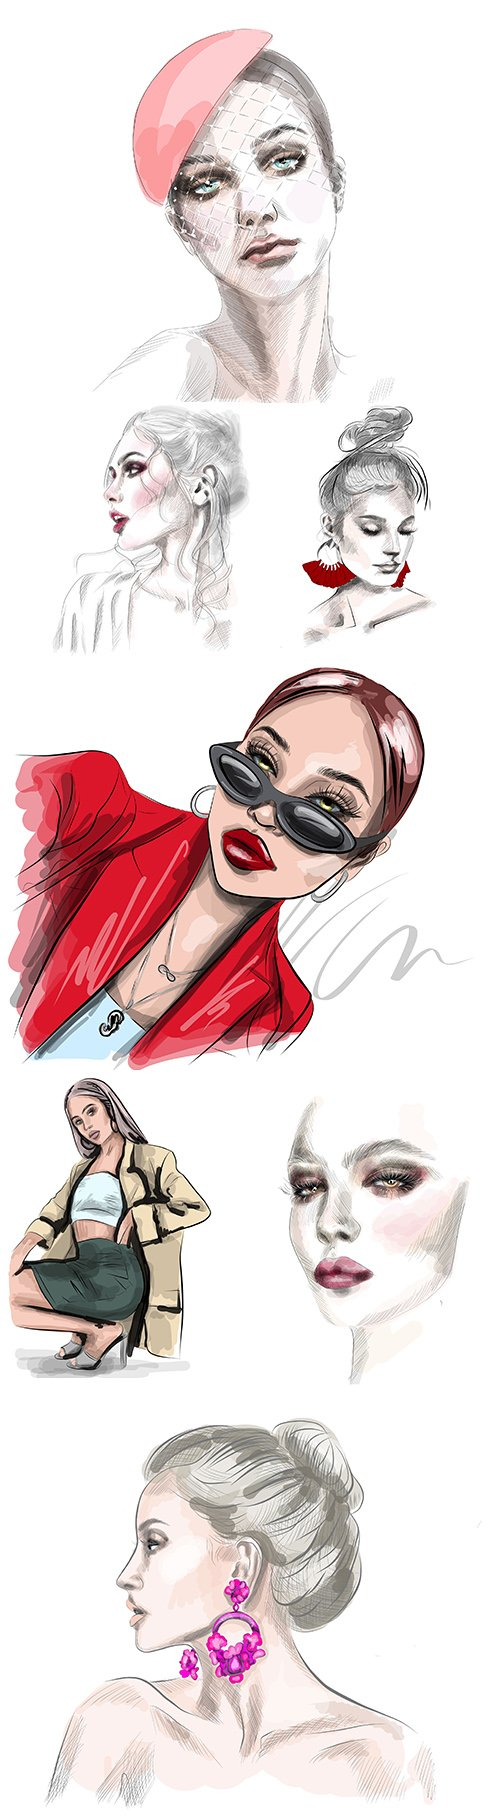 Sketch face of beautiful young woman painted illustration